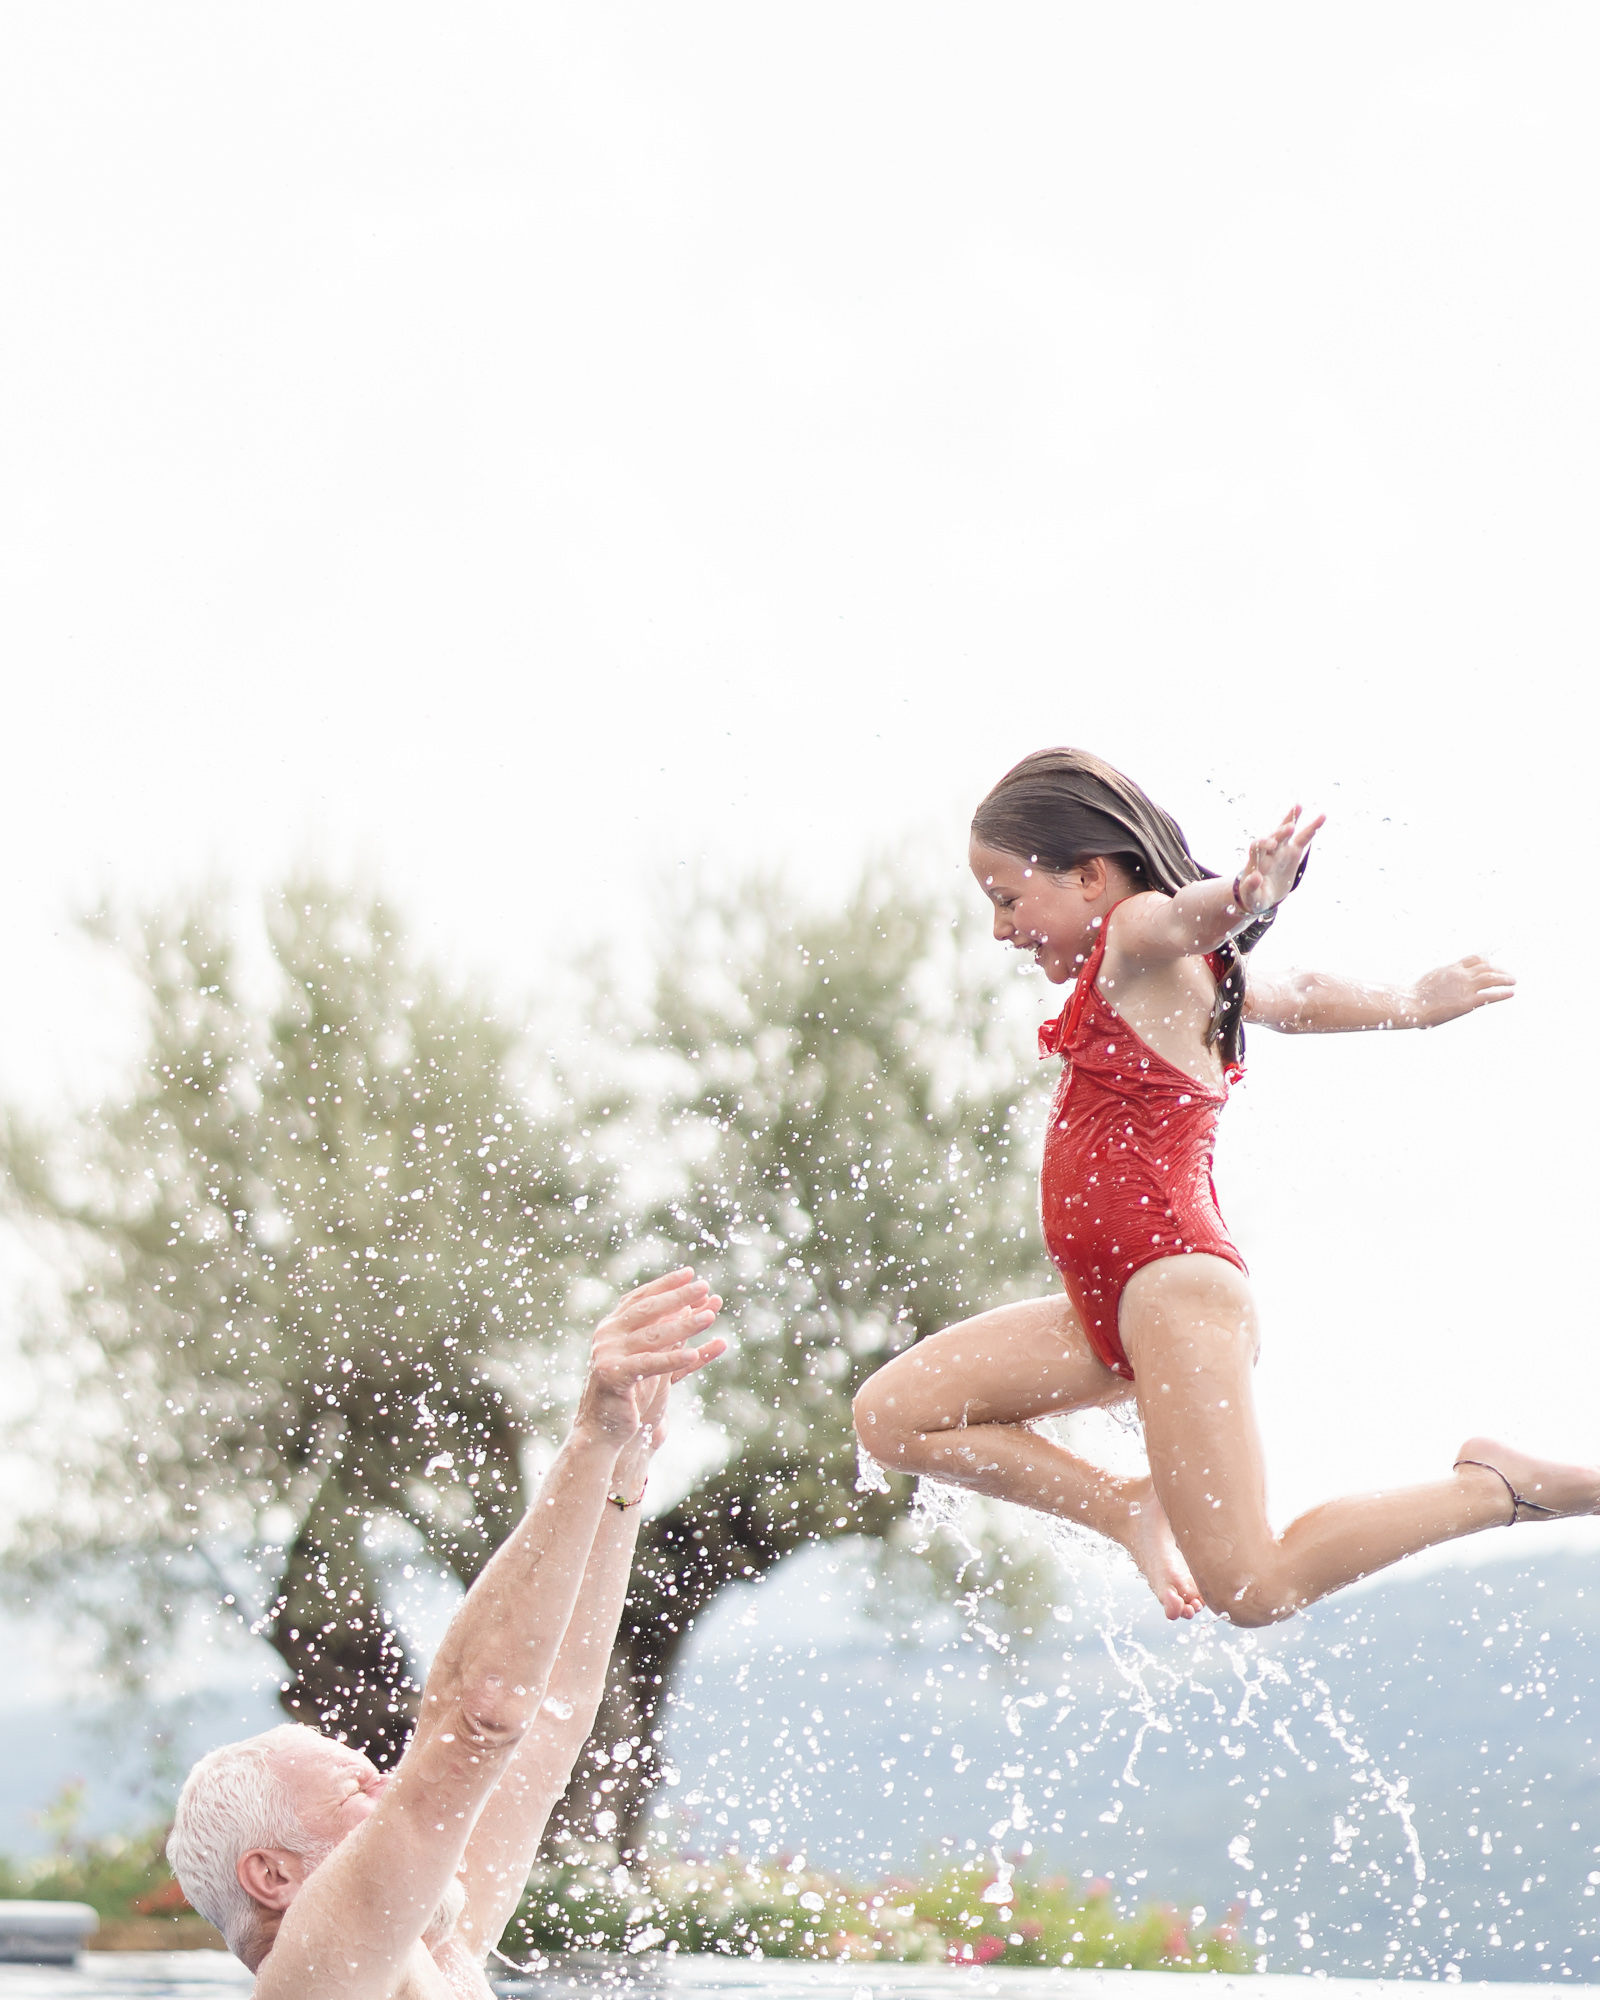 Father playing with his daughter in a swimming pool at Belmond Castello di Casole in Tuscany, Italy